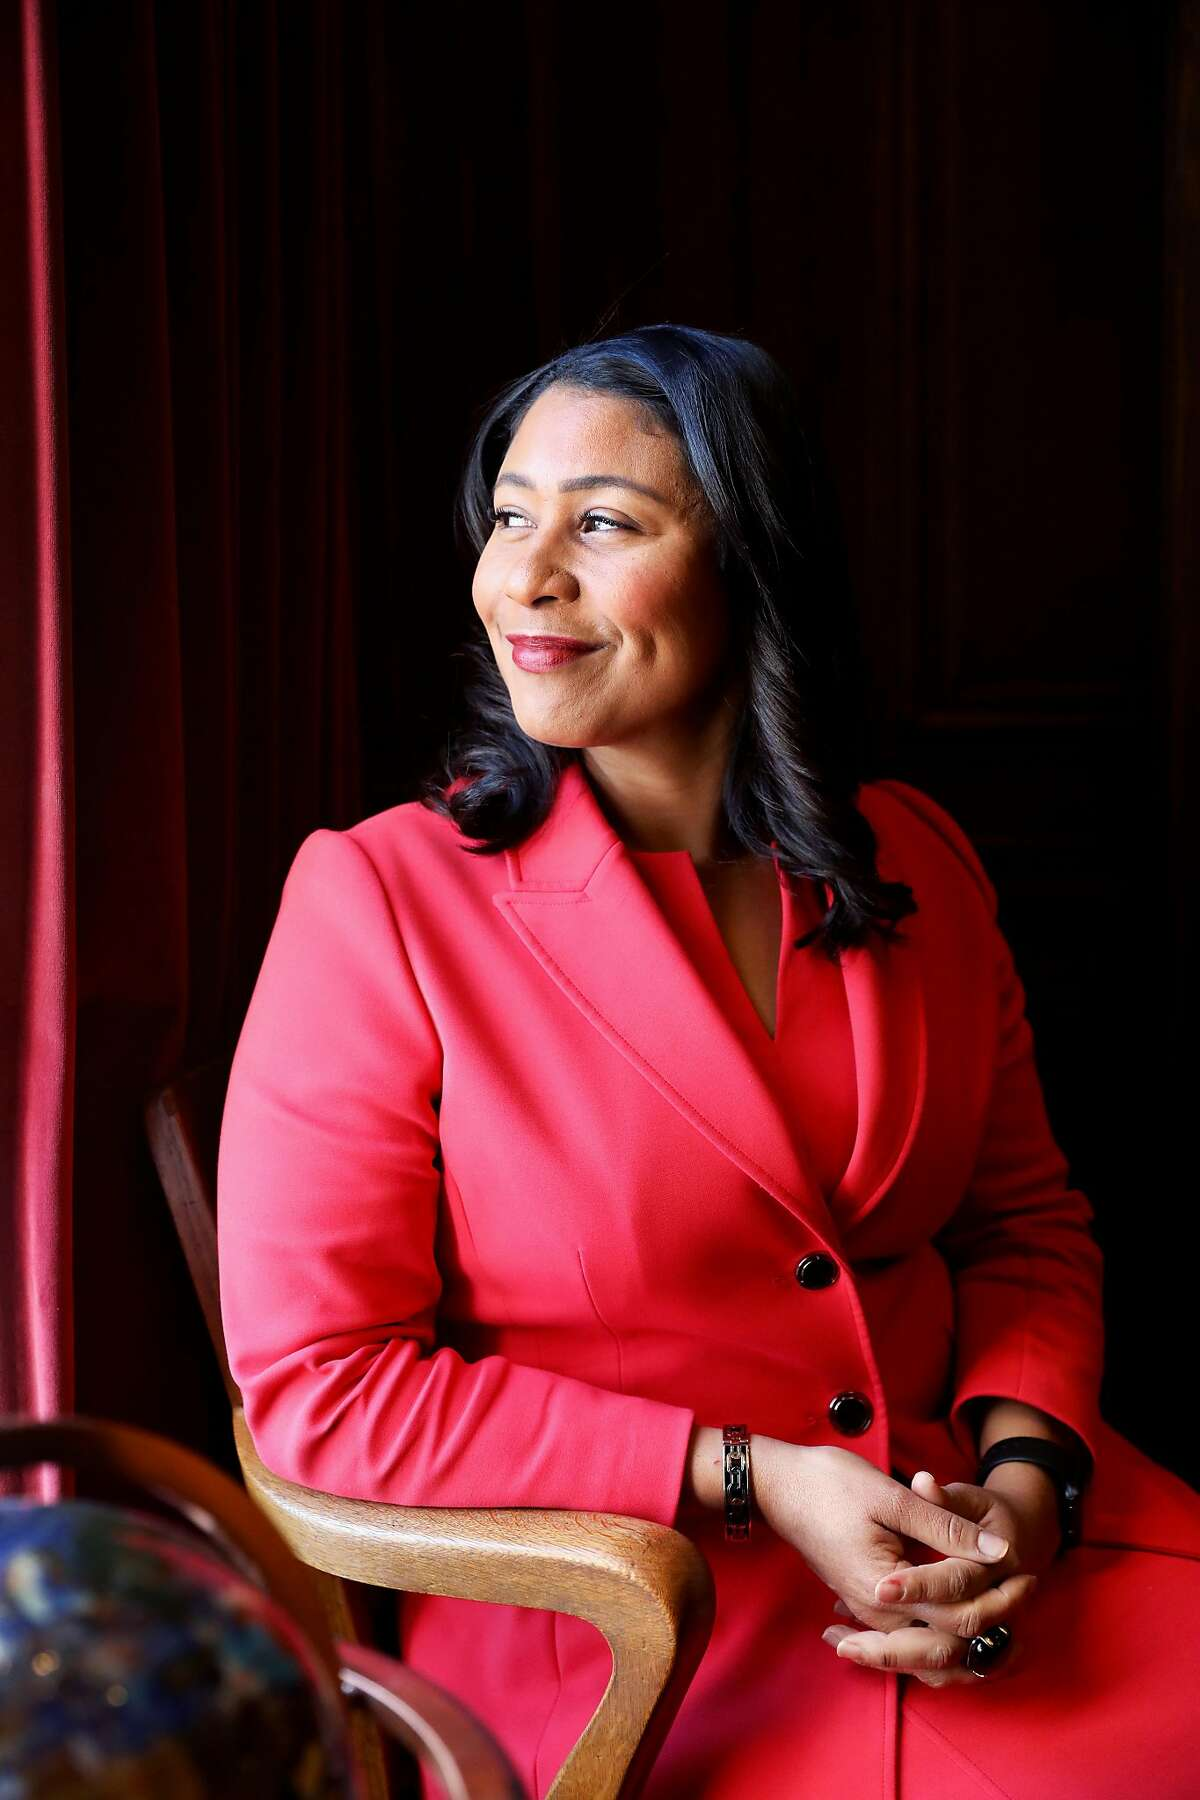 Mayor London Breed poses for a portrait in a conference room at City Hall in San Francisco, Calif., onTuesday, February 5, 2019.